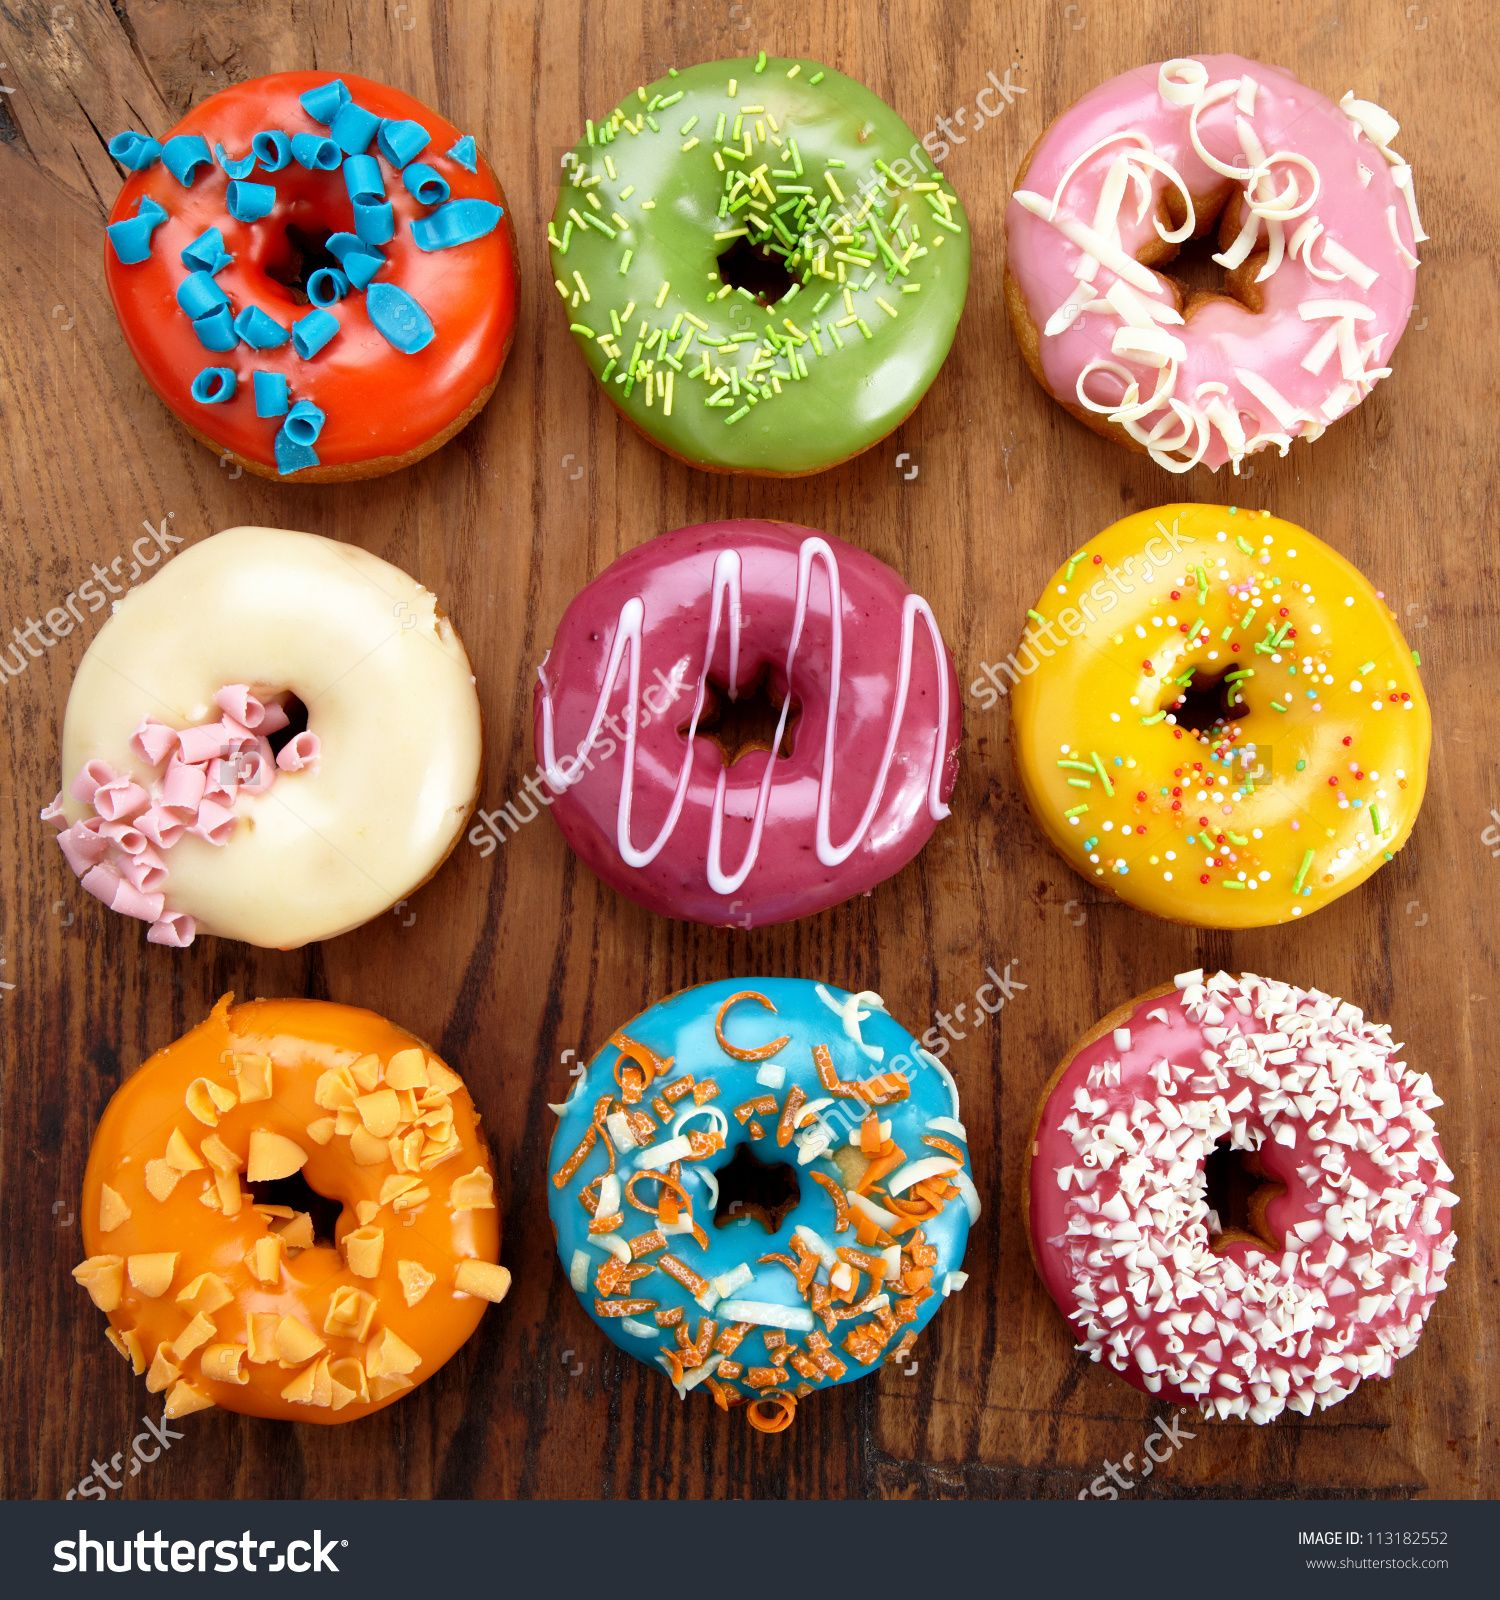 Sweet Food Stock Photos, Images, & Pictures | Shutterstock ...